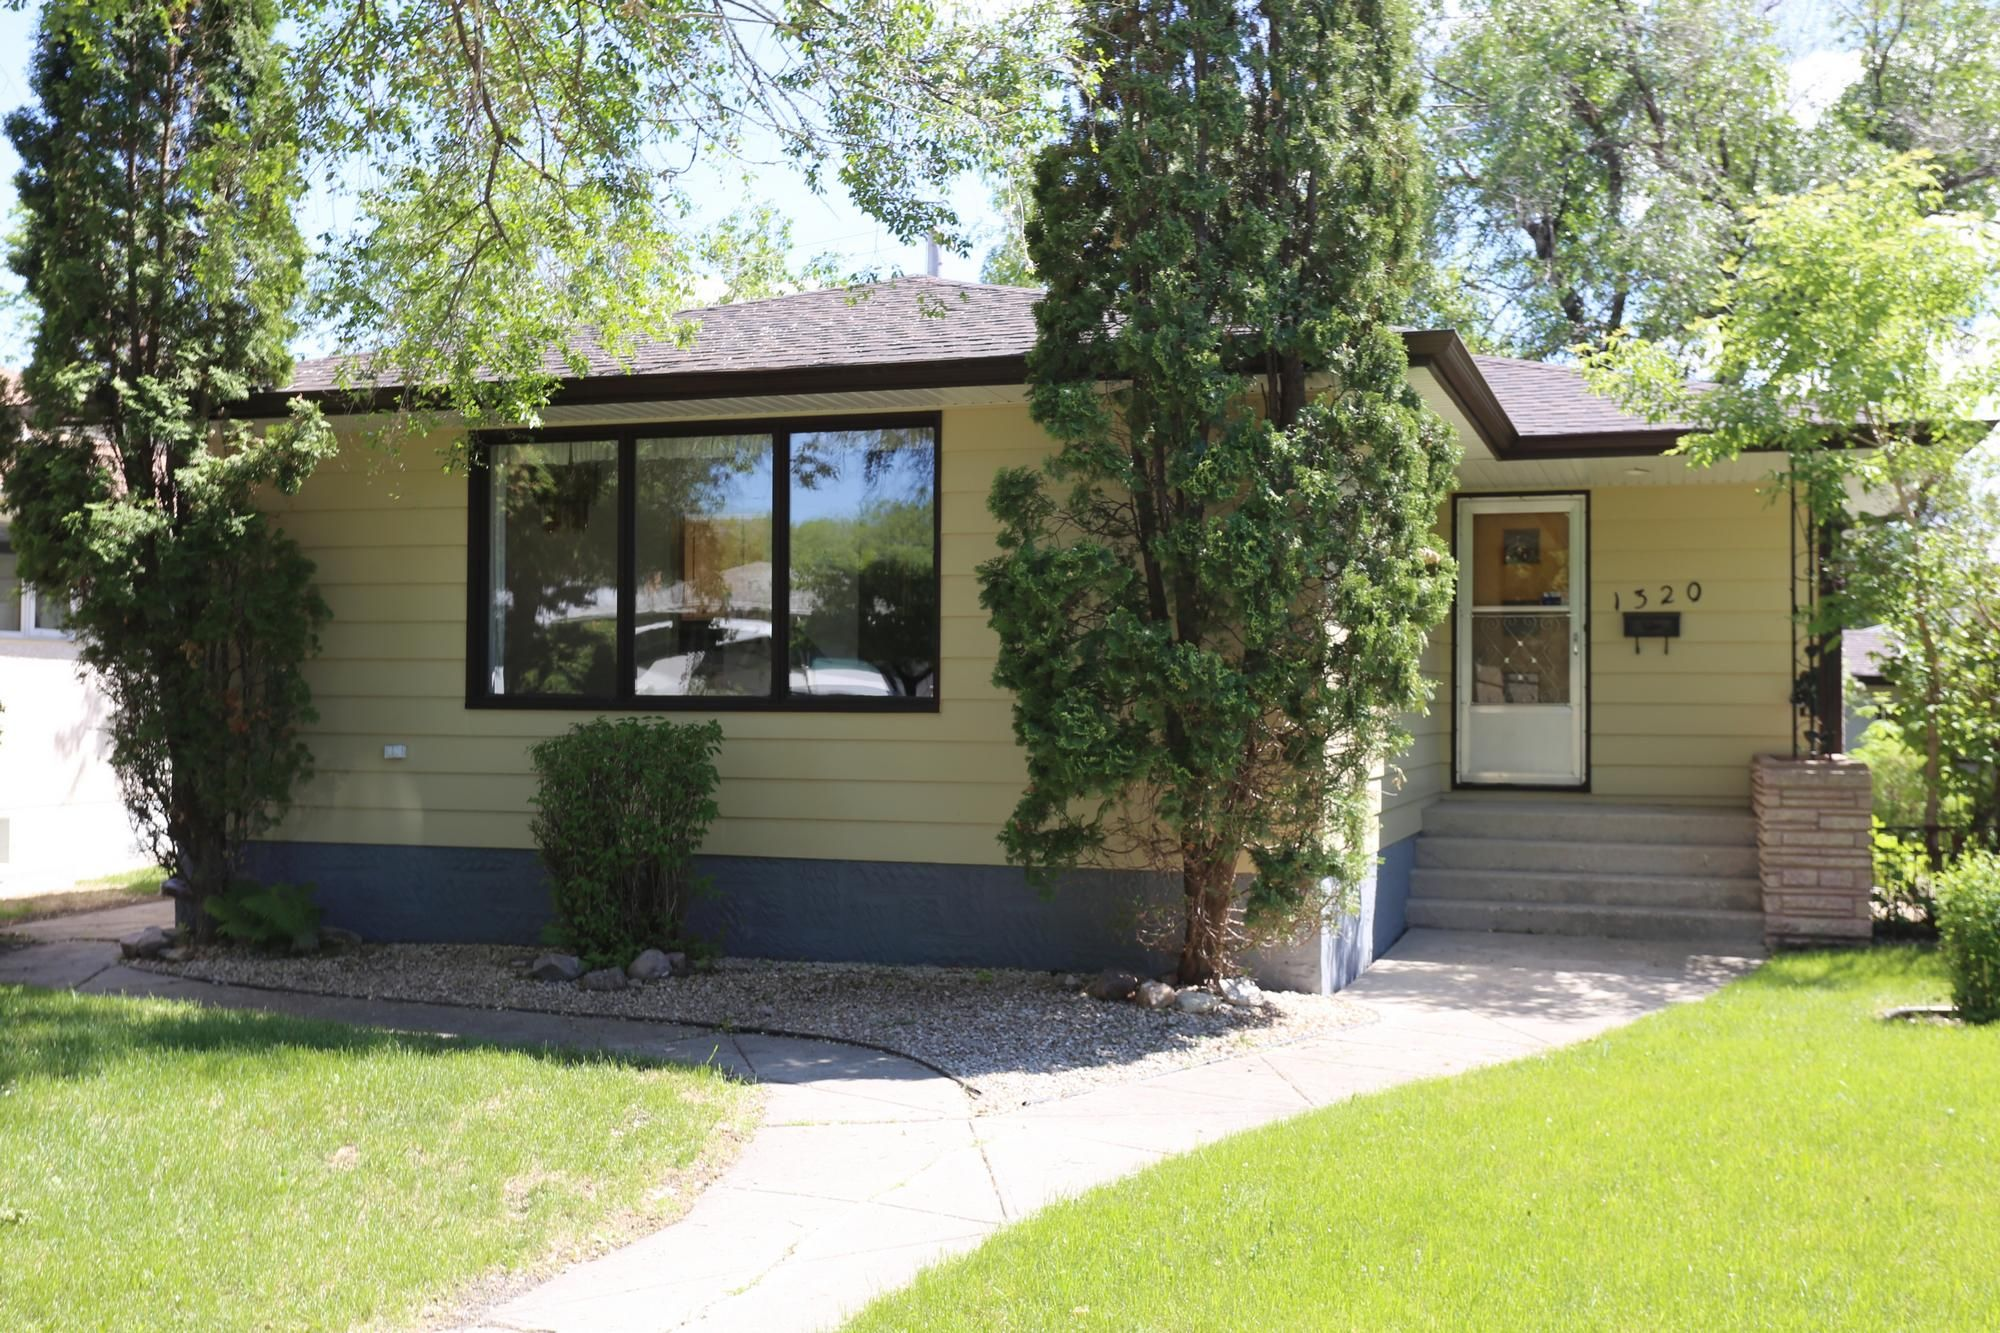 Photo 35: Photos: 1320 Valour Road in Winnipeg: West End Single Family Detached for sale (5C)  : MLS®# 1816744